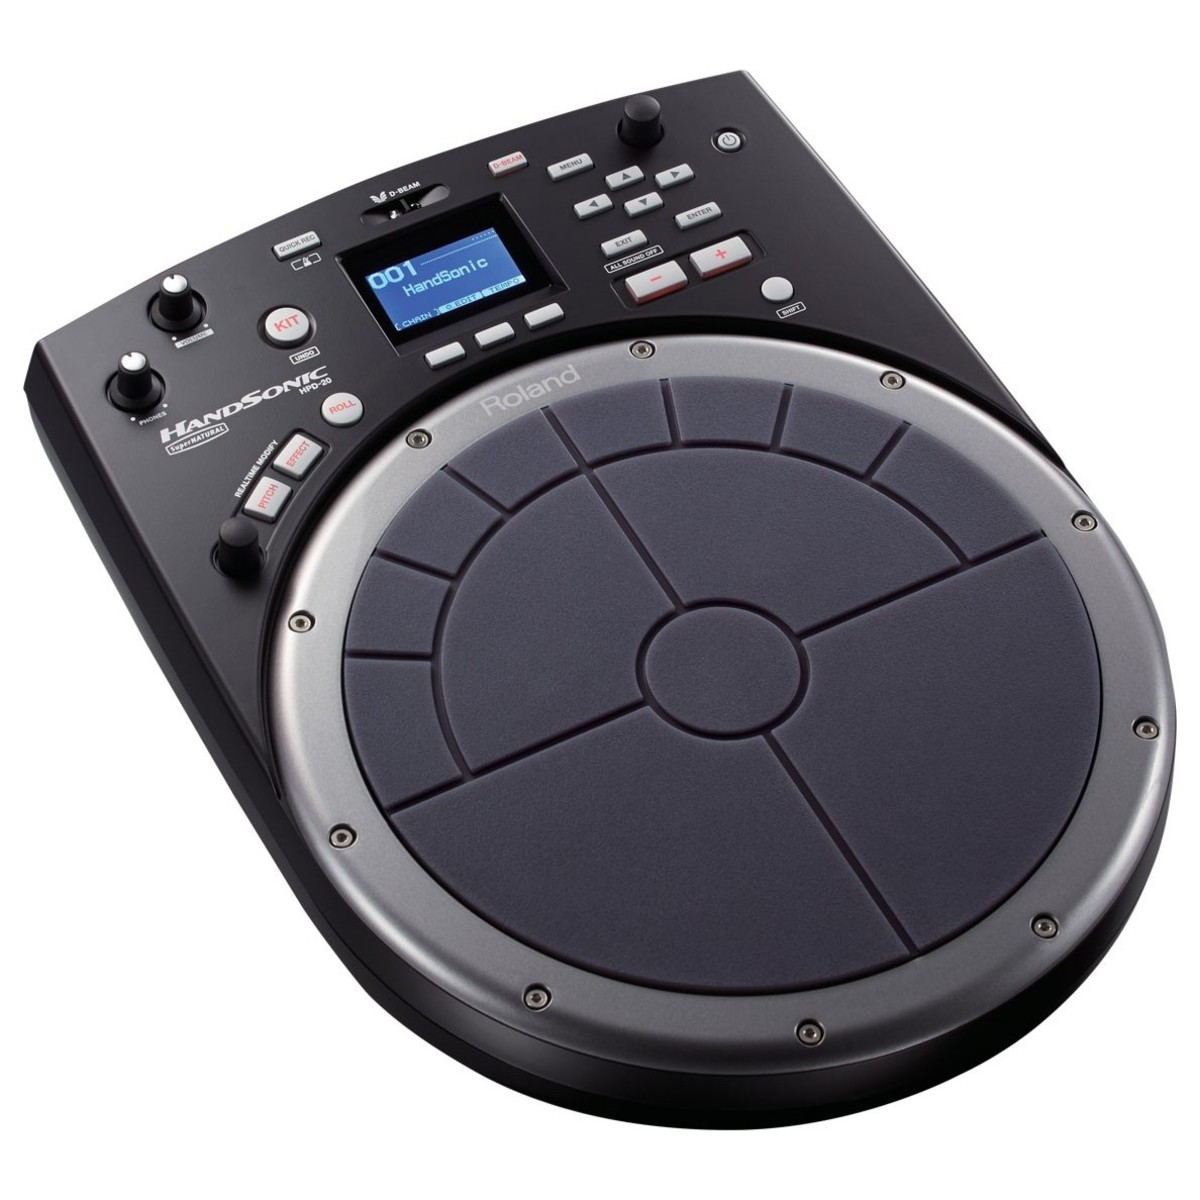 roland hpd 20 handsonic electronic percussion pad at gear4music. Black Bedroom Furniture Sets. Home Design Ideas